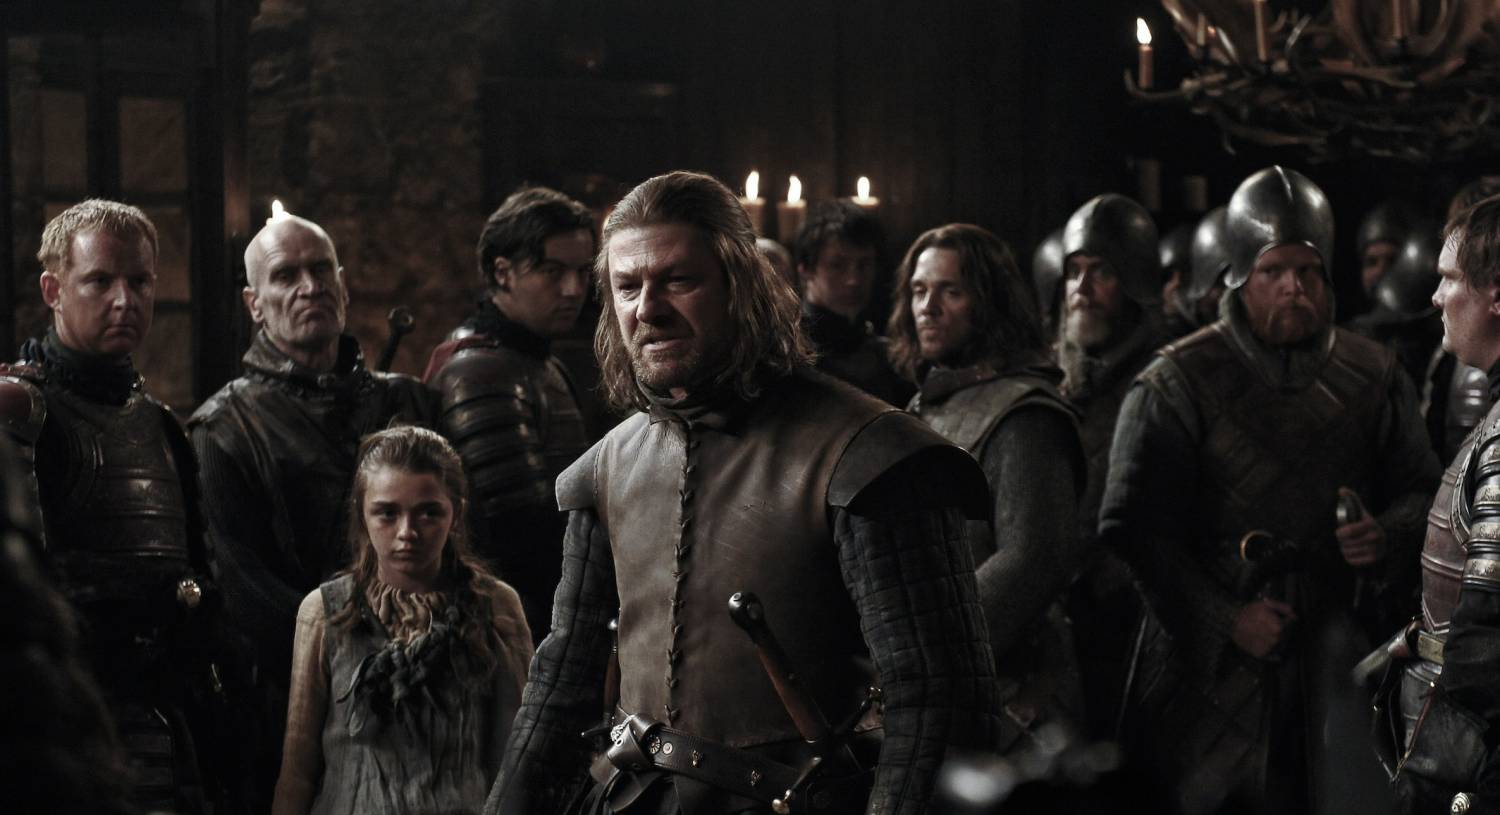 From the Simpsons to House Stark: our favourite fictional daddy/daughter teams